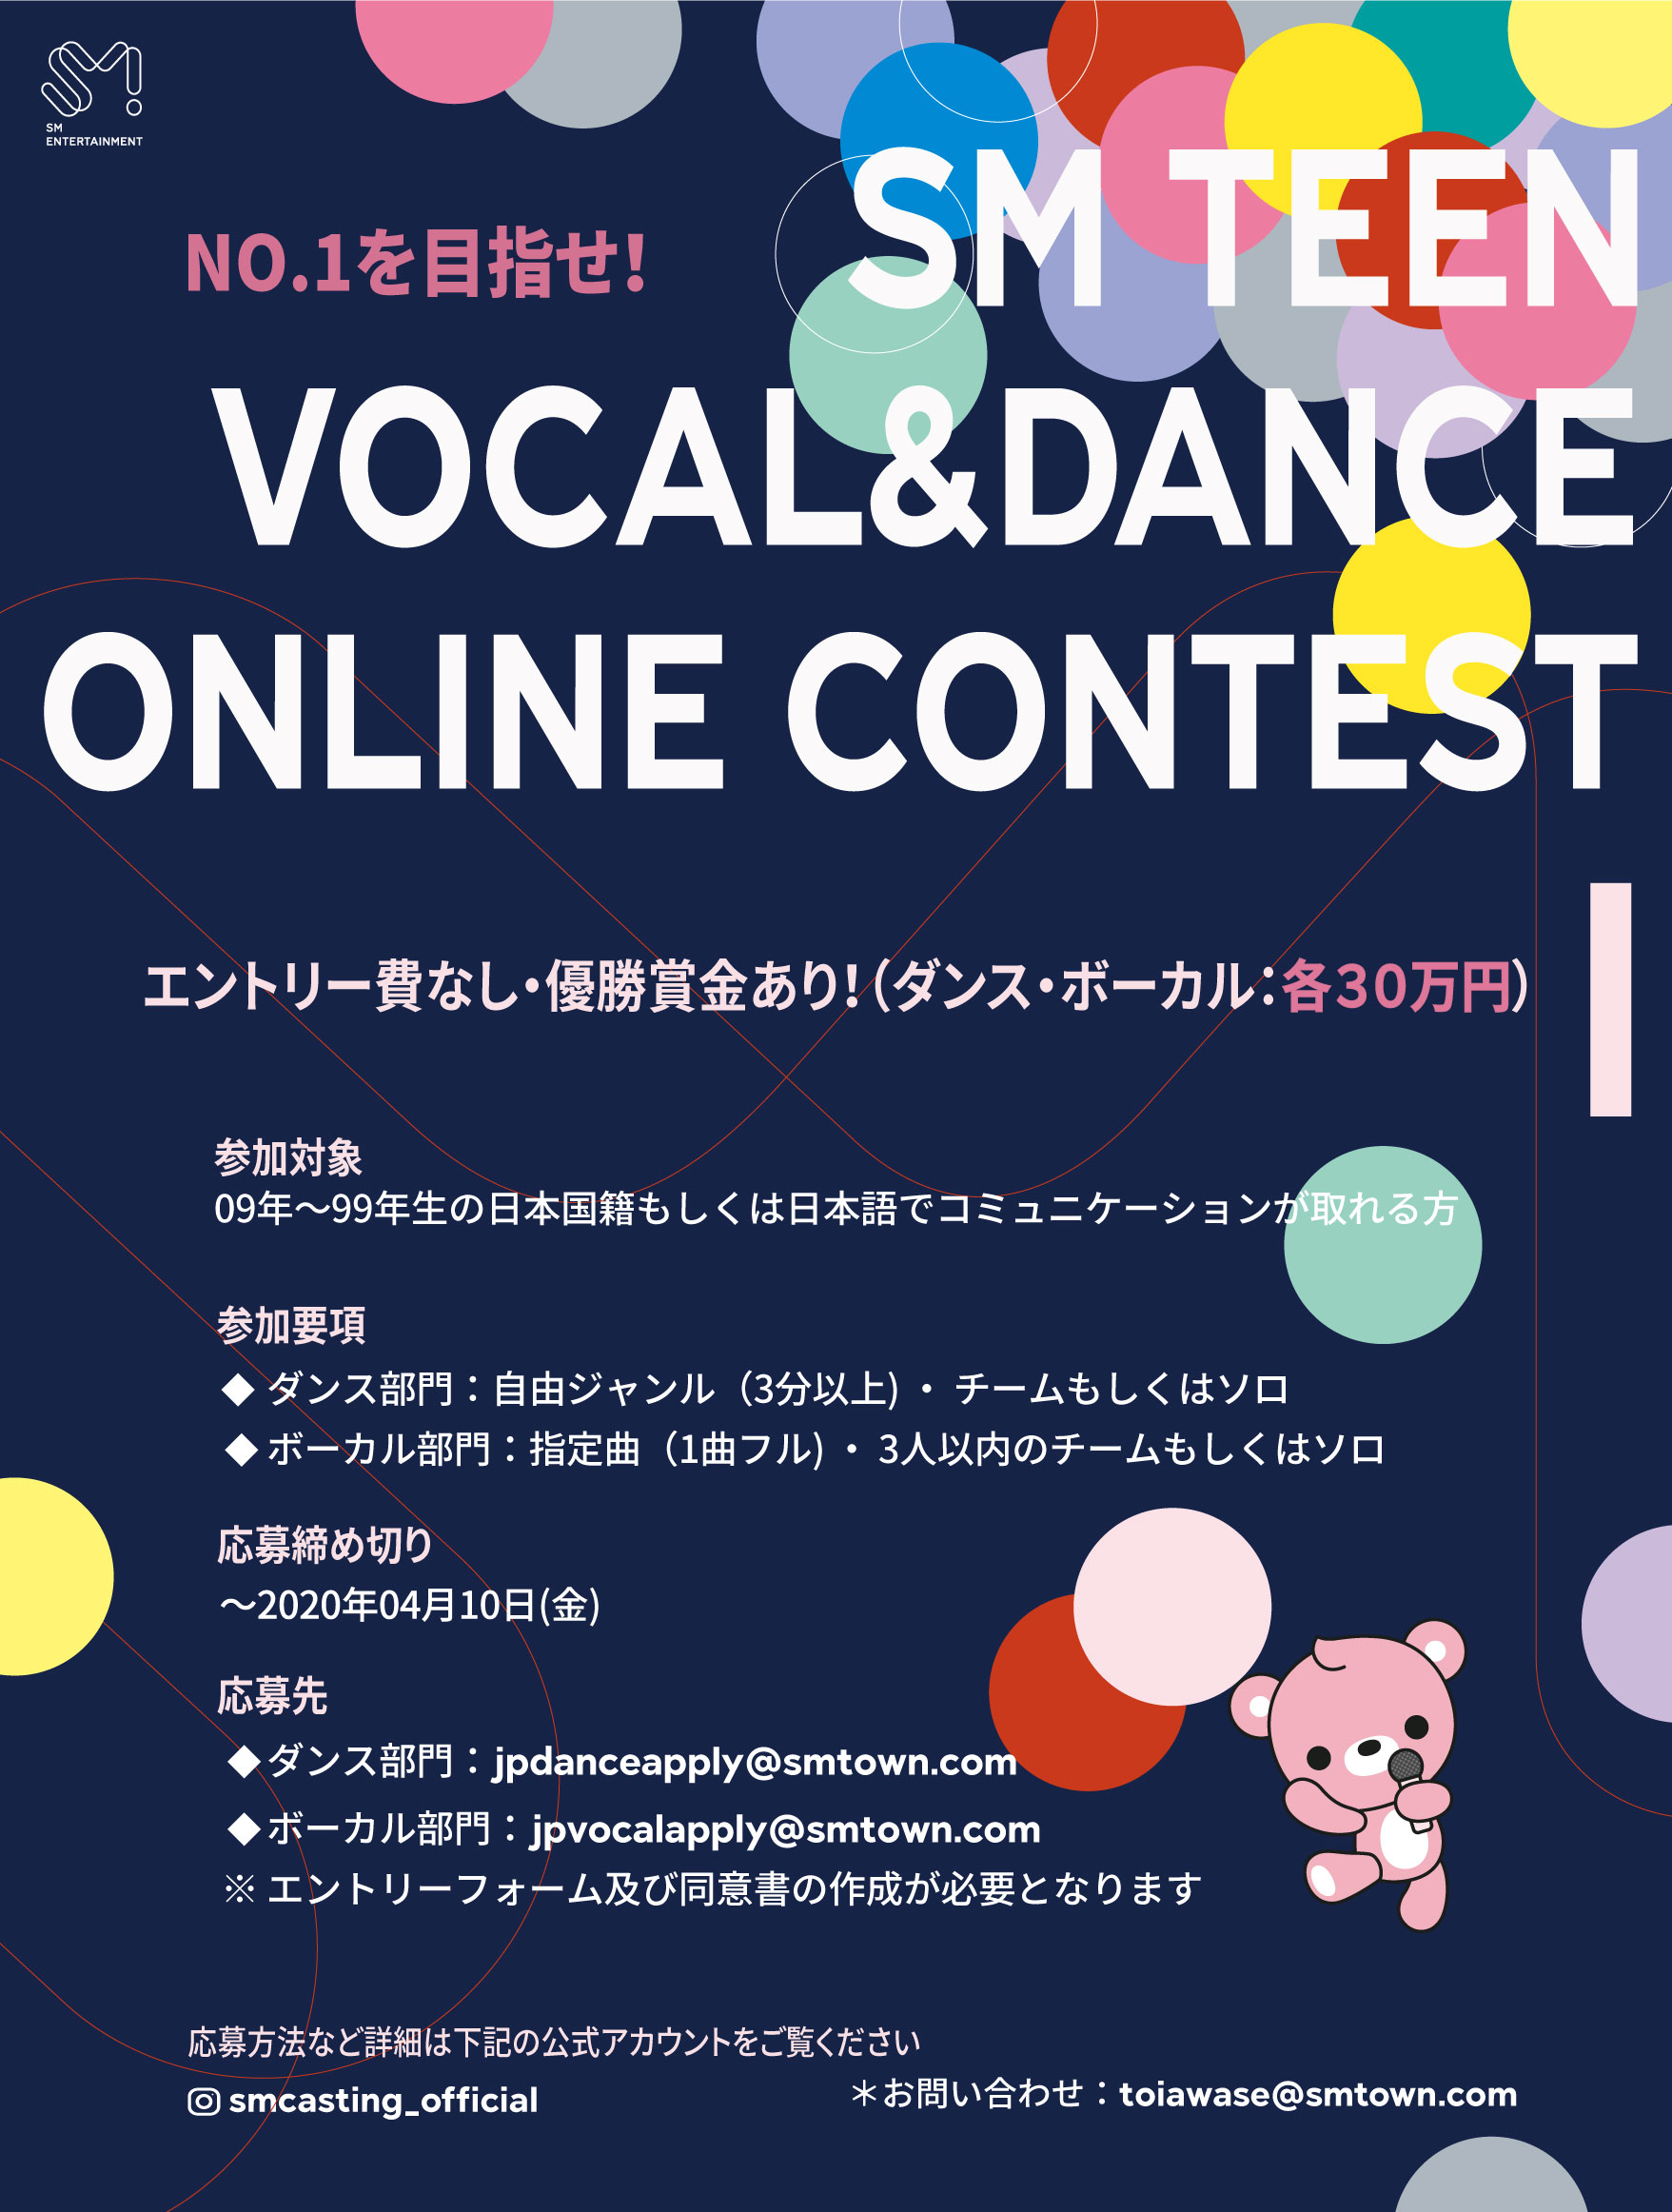 2020 SM TEEN VOCAL & DANCE ONLINE CONTEST 開催!